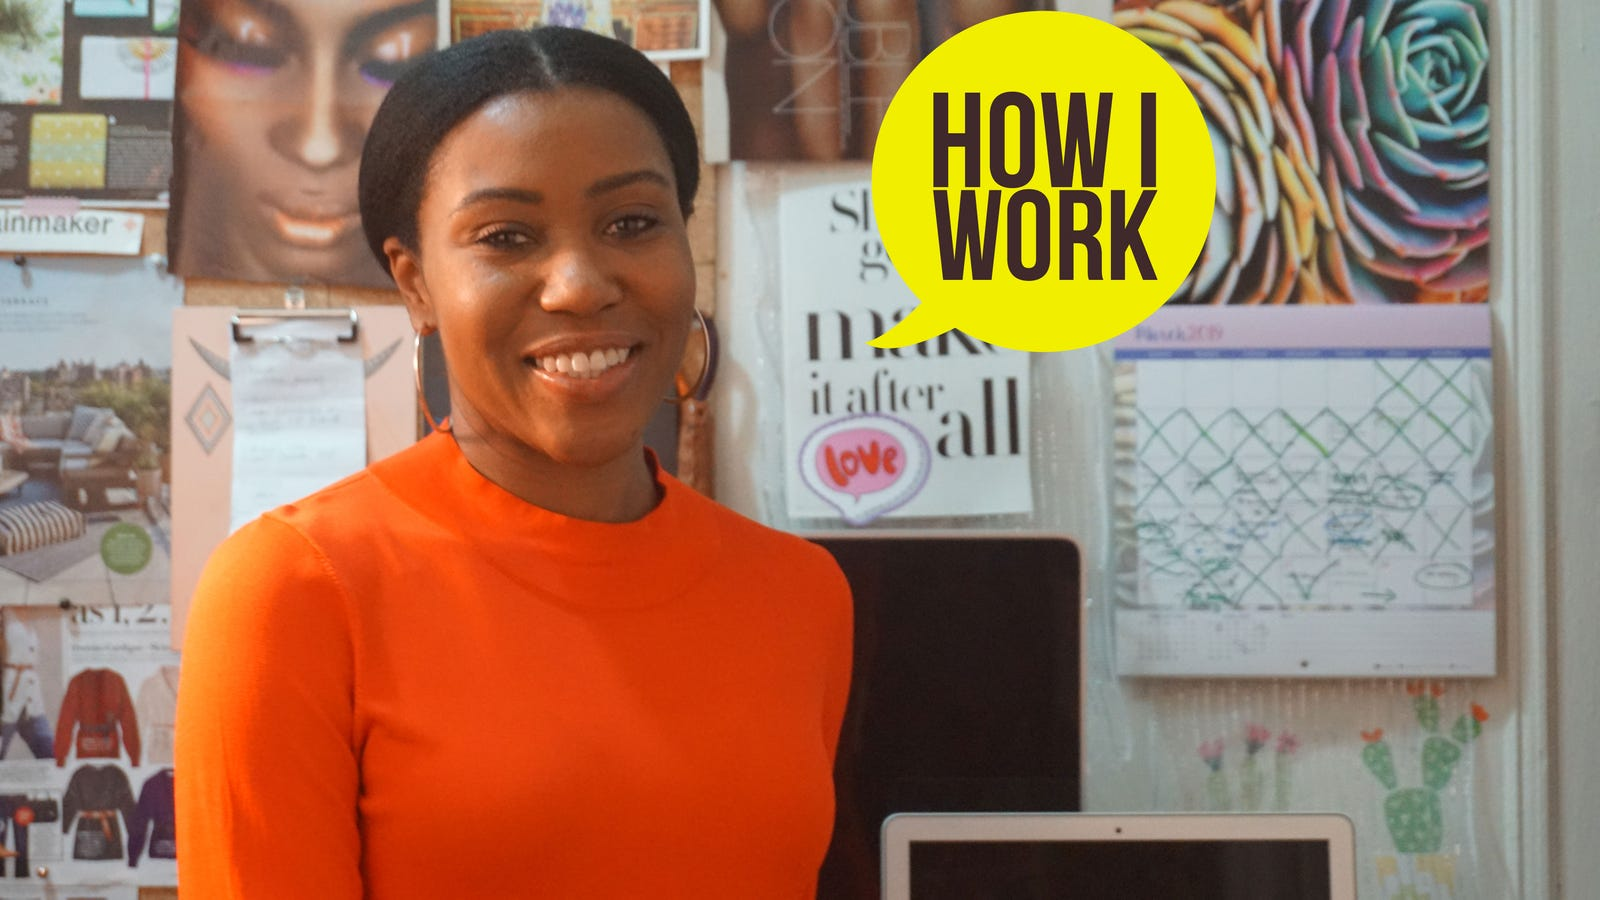 QnA VBage I'm Sirita Wright, Cannabis Media Entrepreneur, and This Is How I Work